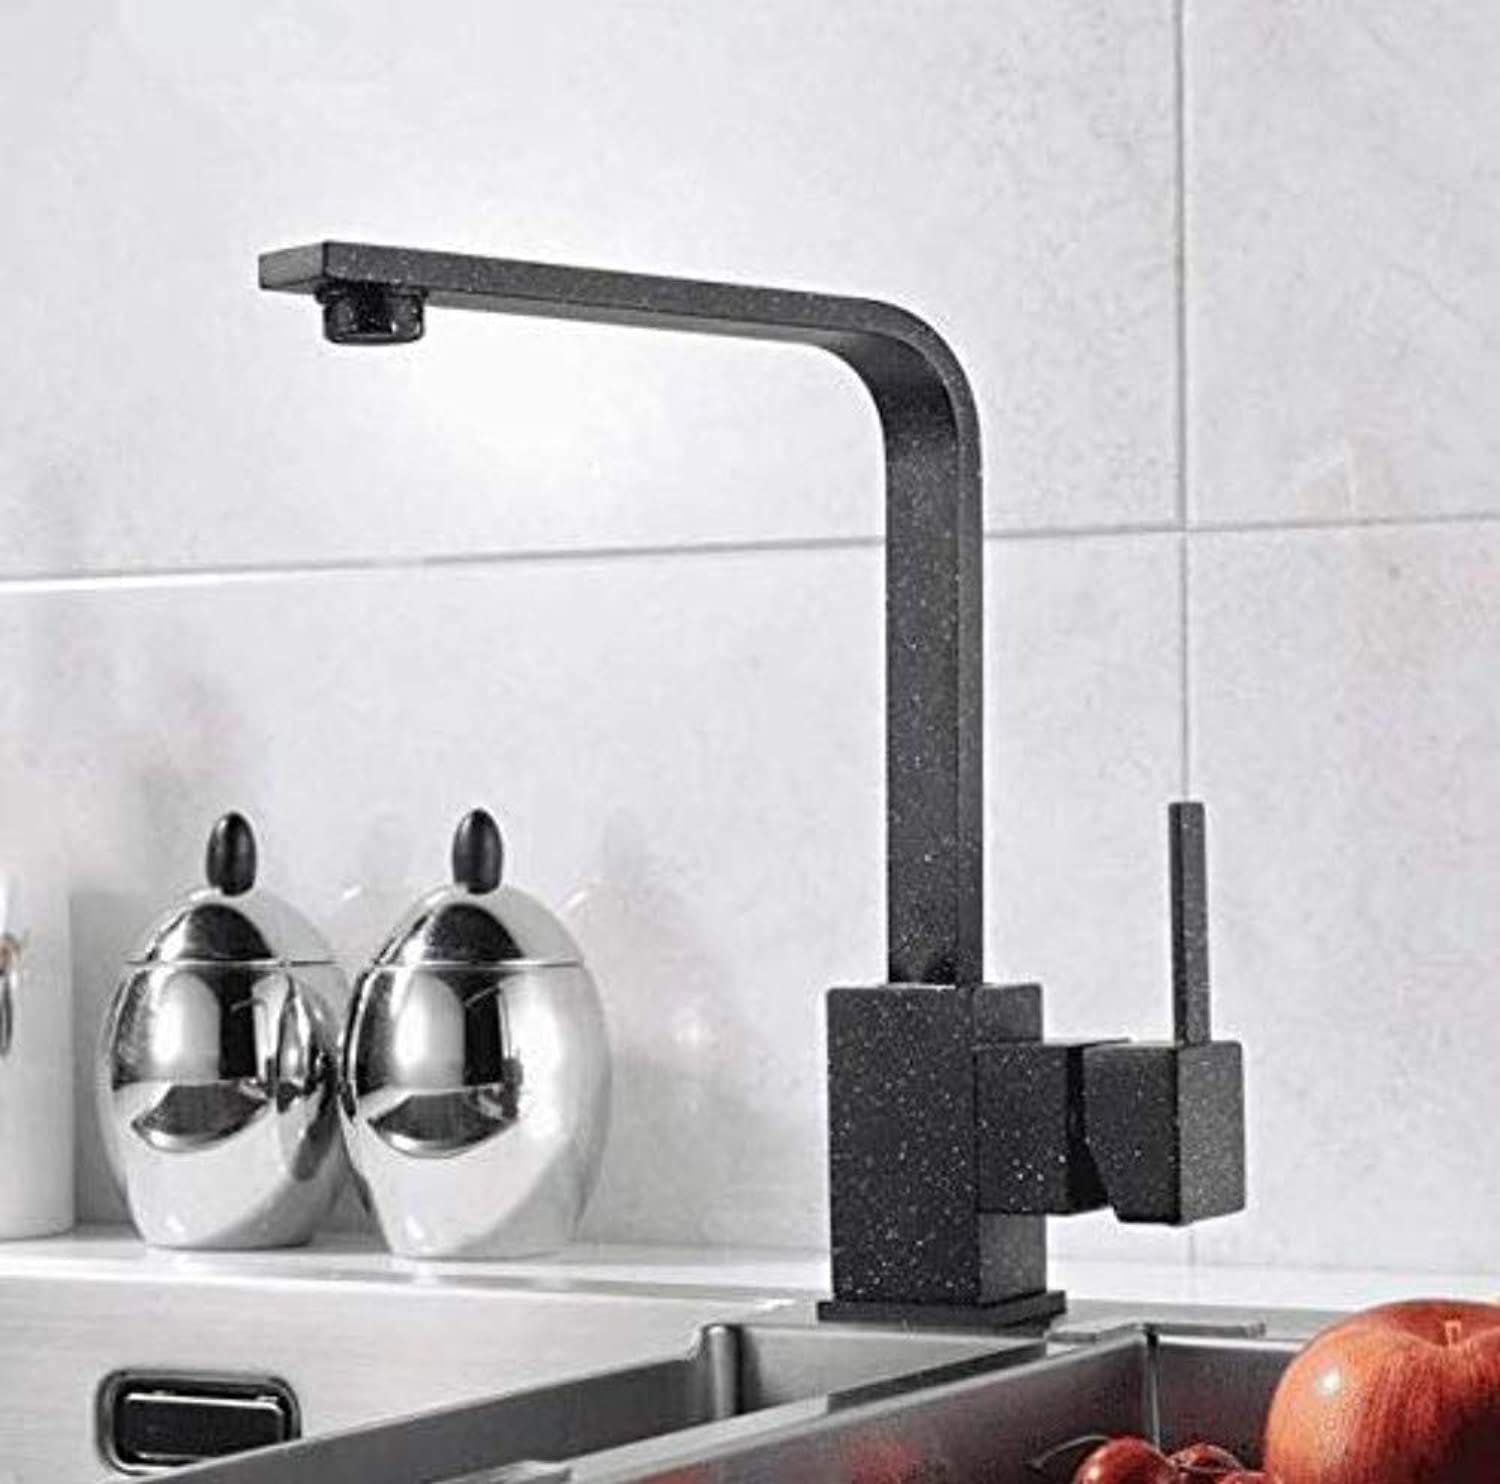 Brass Wall Faucet Chrome Brass Faucethot and Cold Kitchen Quartz Stone Basin Granite Can redate Universal White Faucet